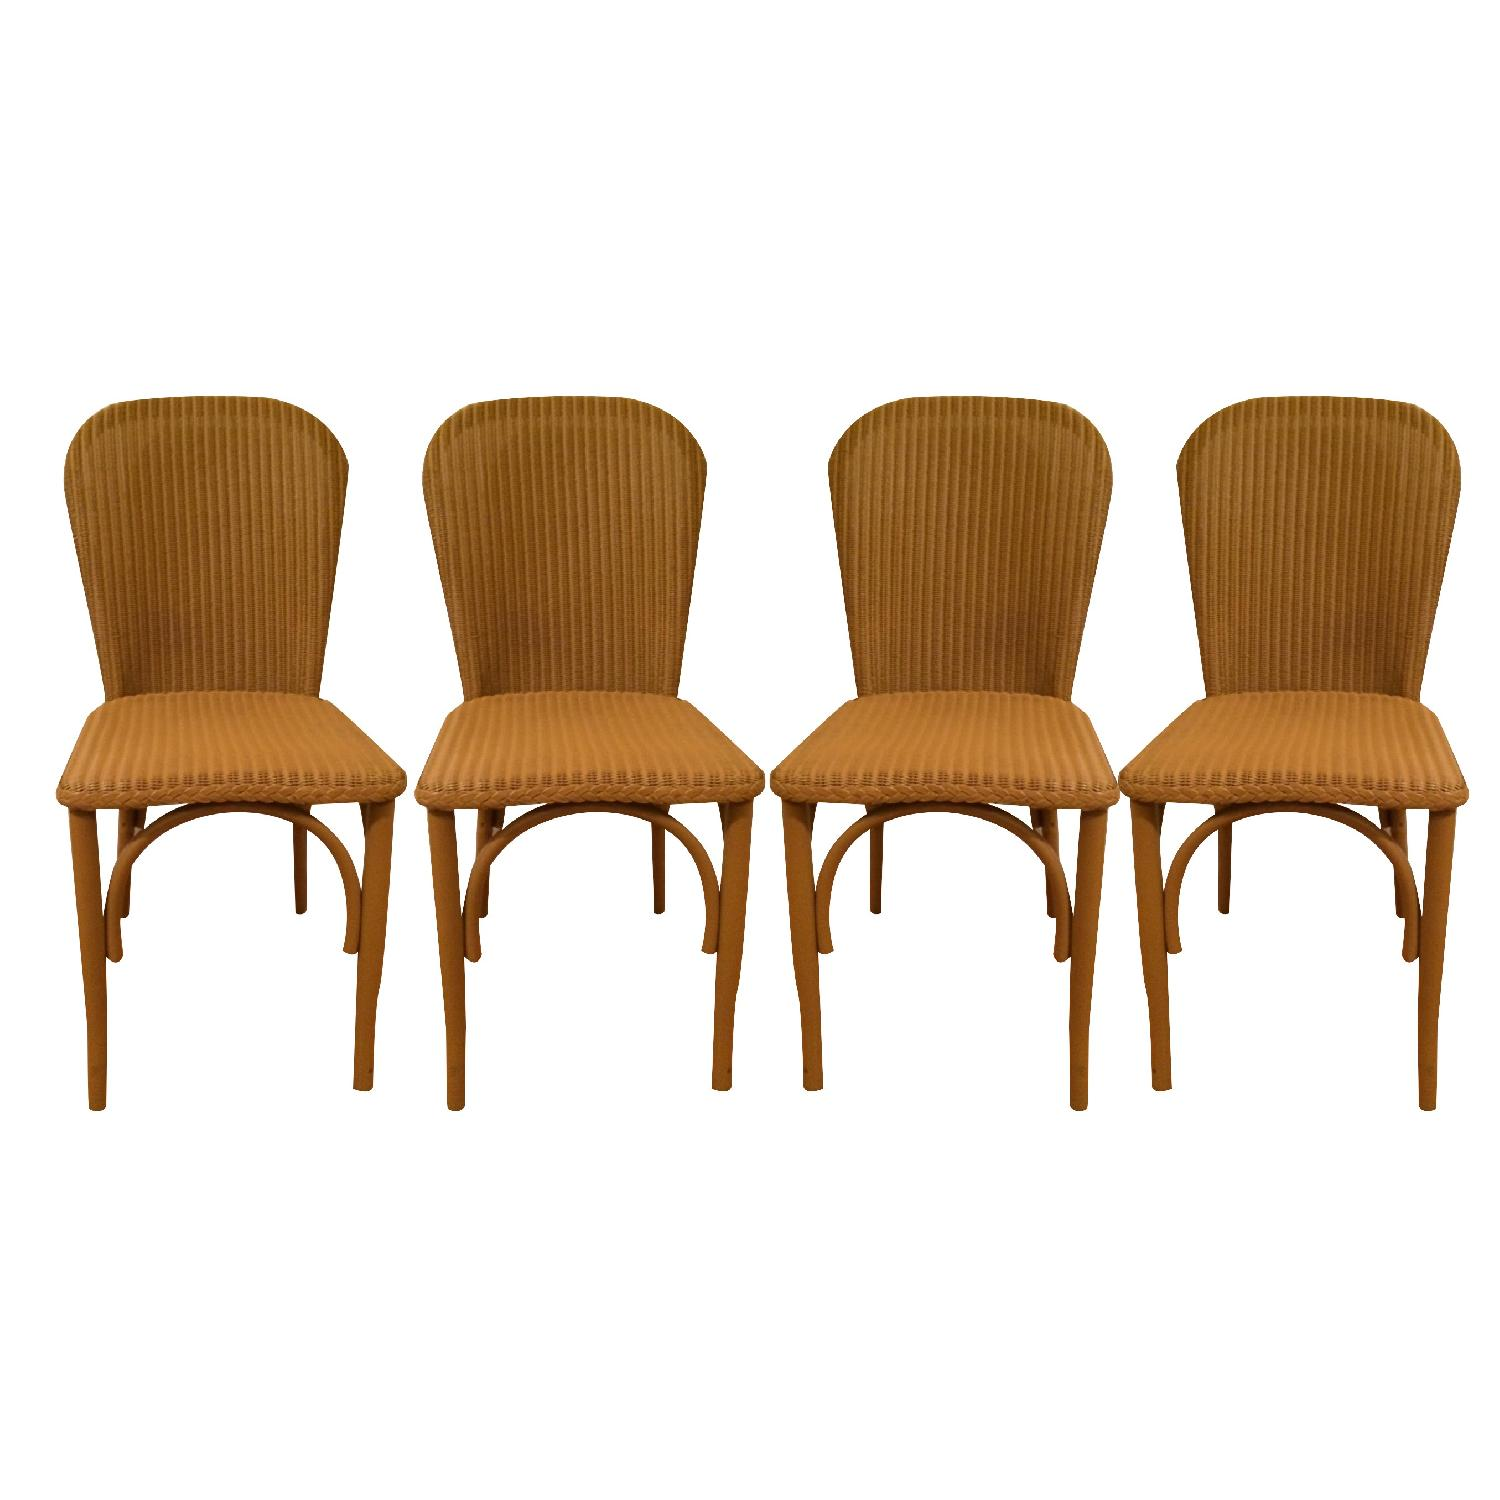 Italian Woven Wire Bentwood Chairs - Set of 4 - image-0